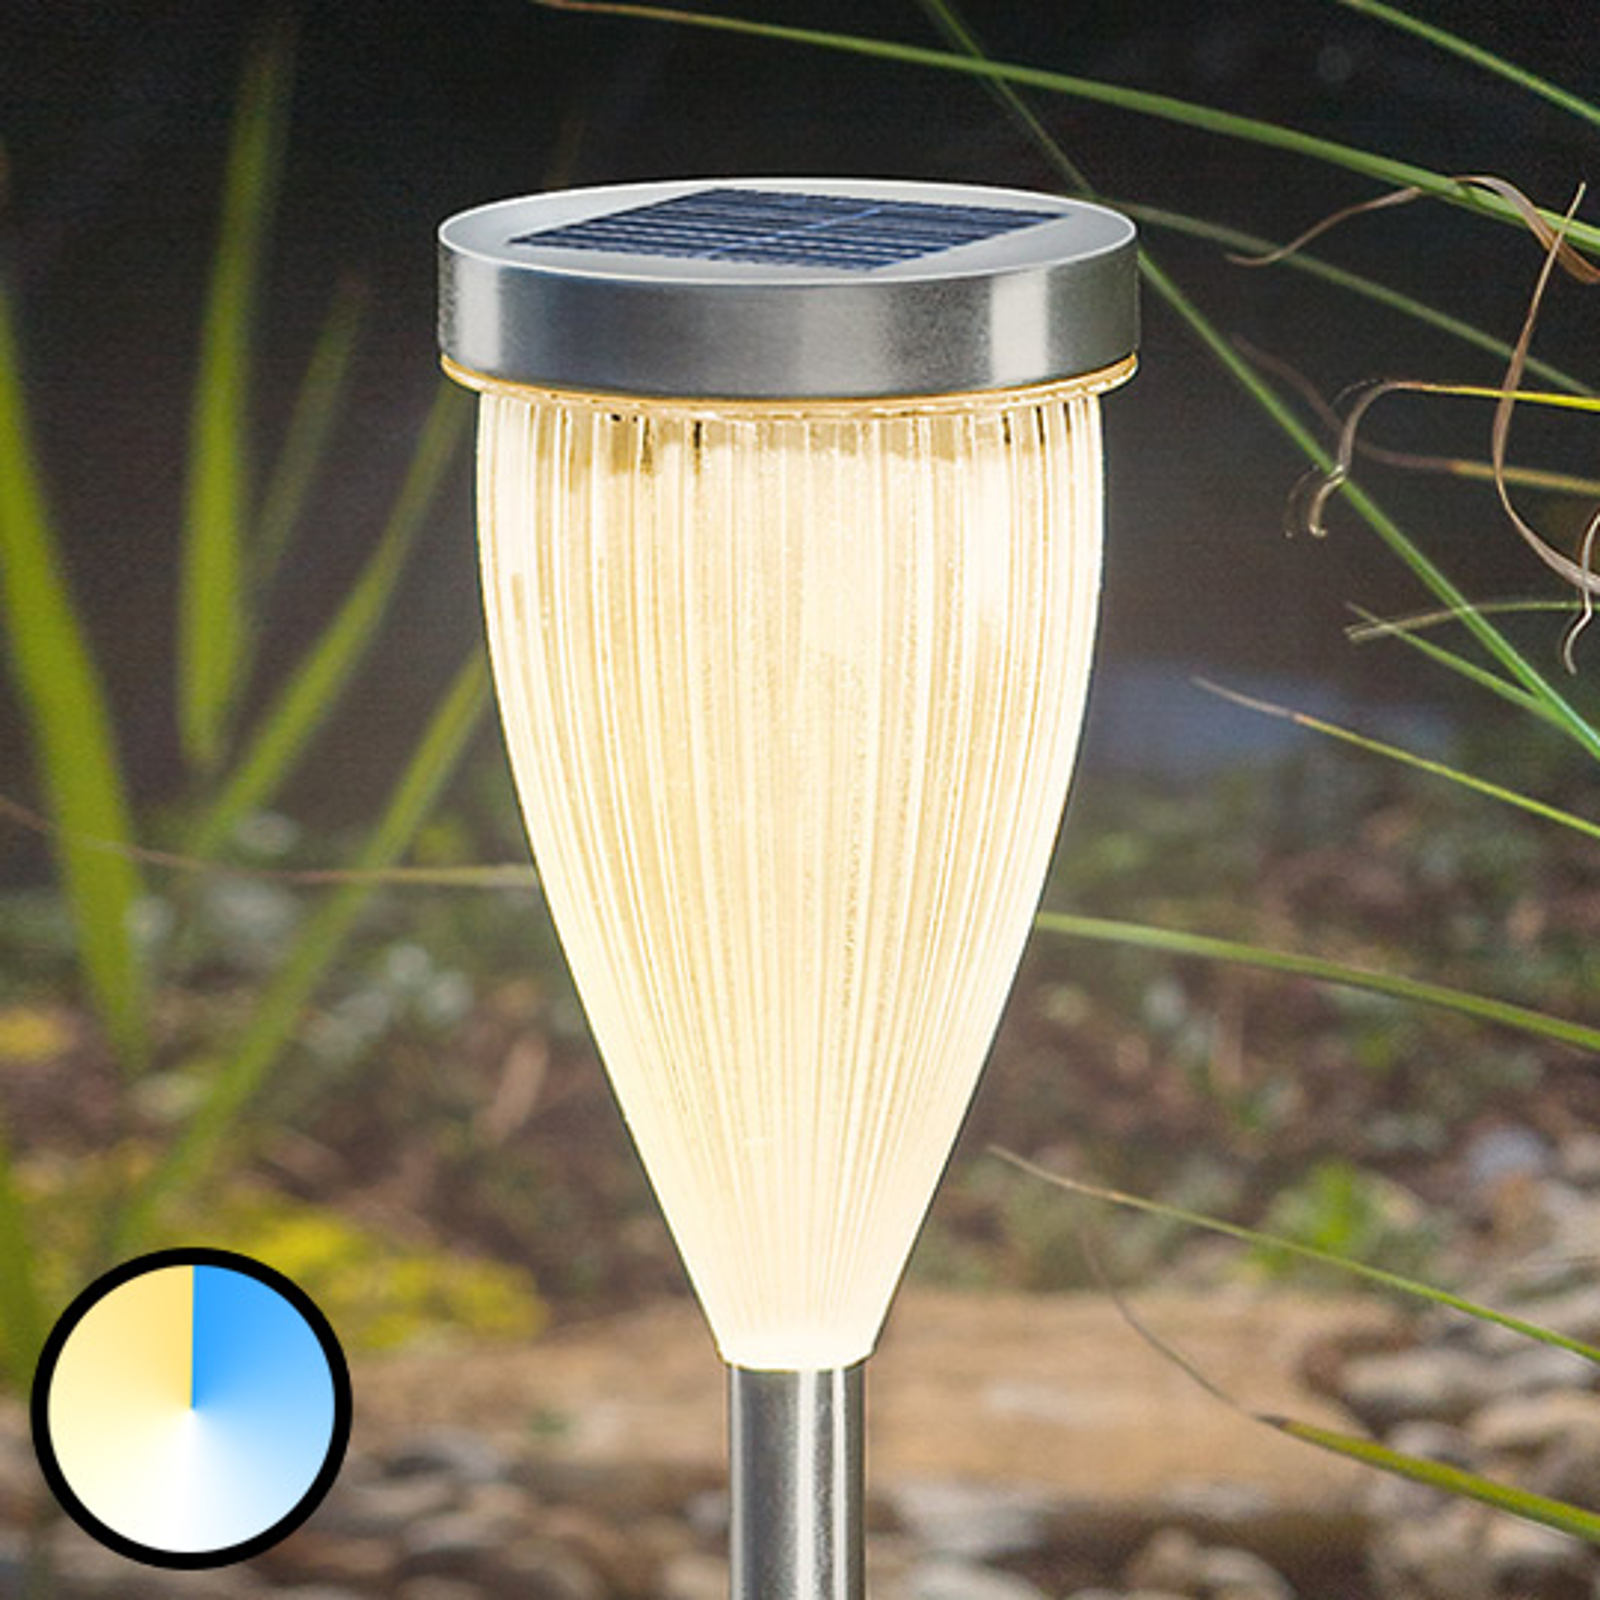 Dream Light - stylish LED solar lamp_3012231_1